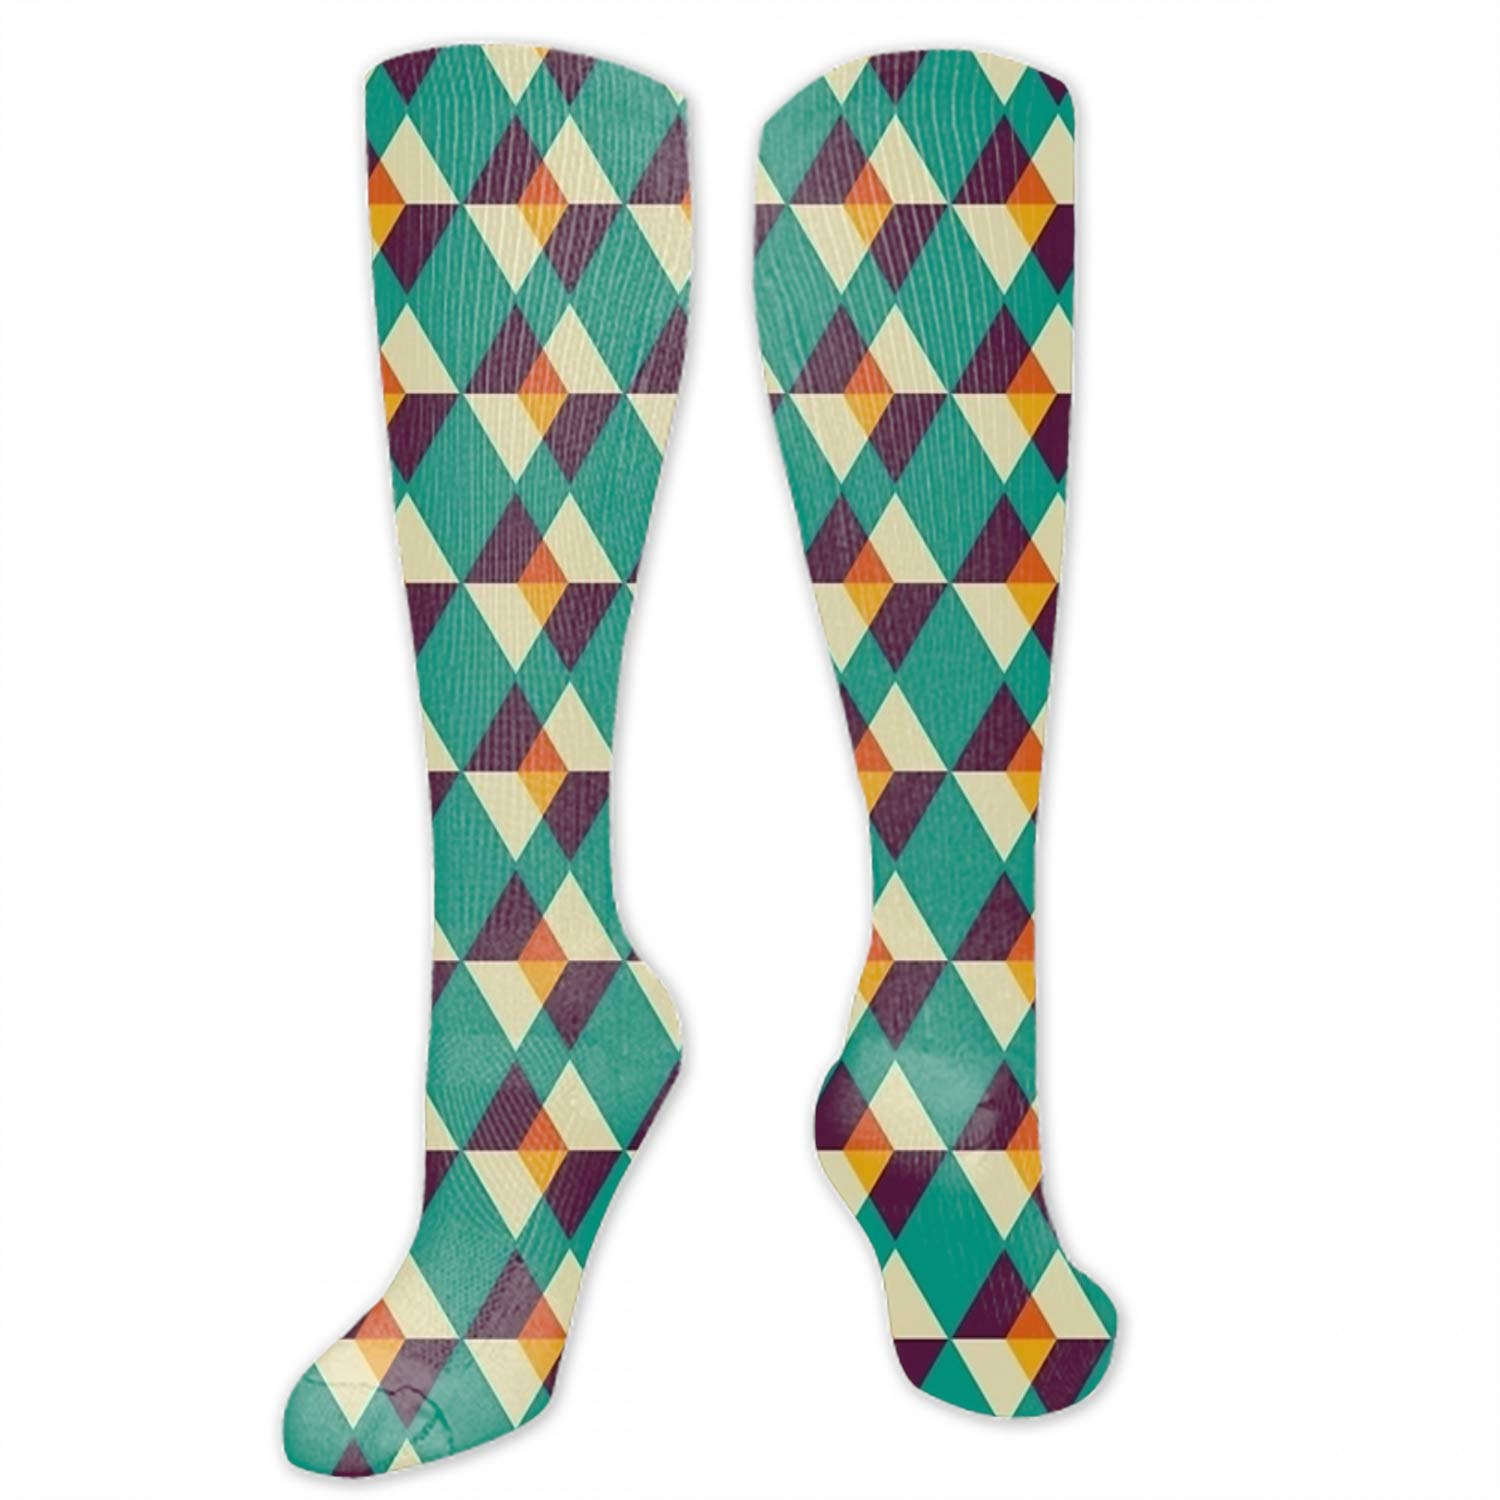 Novelty Cotton Knee High Fun Socks 1 Pairs for Junior and Women